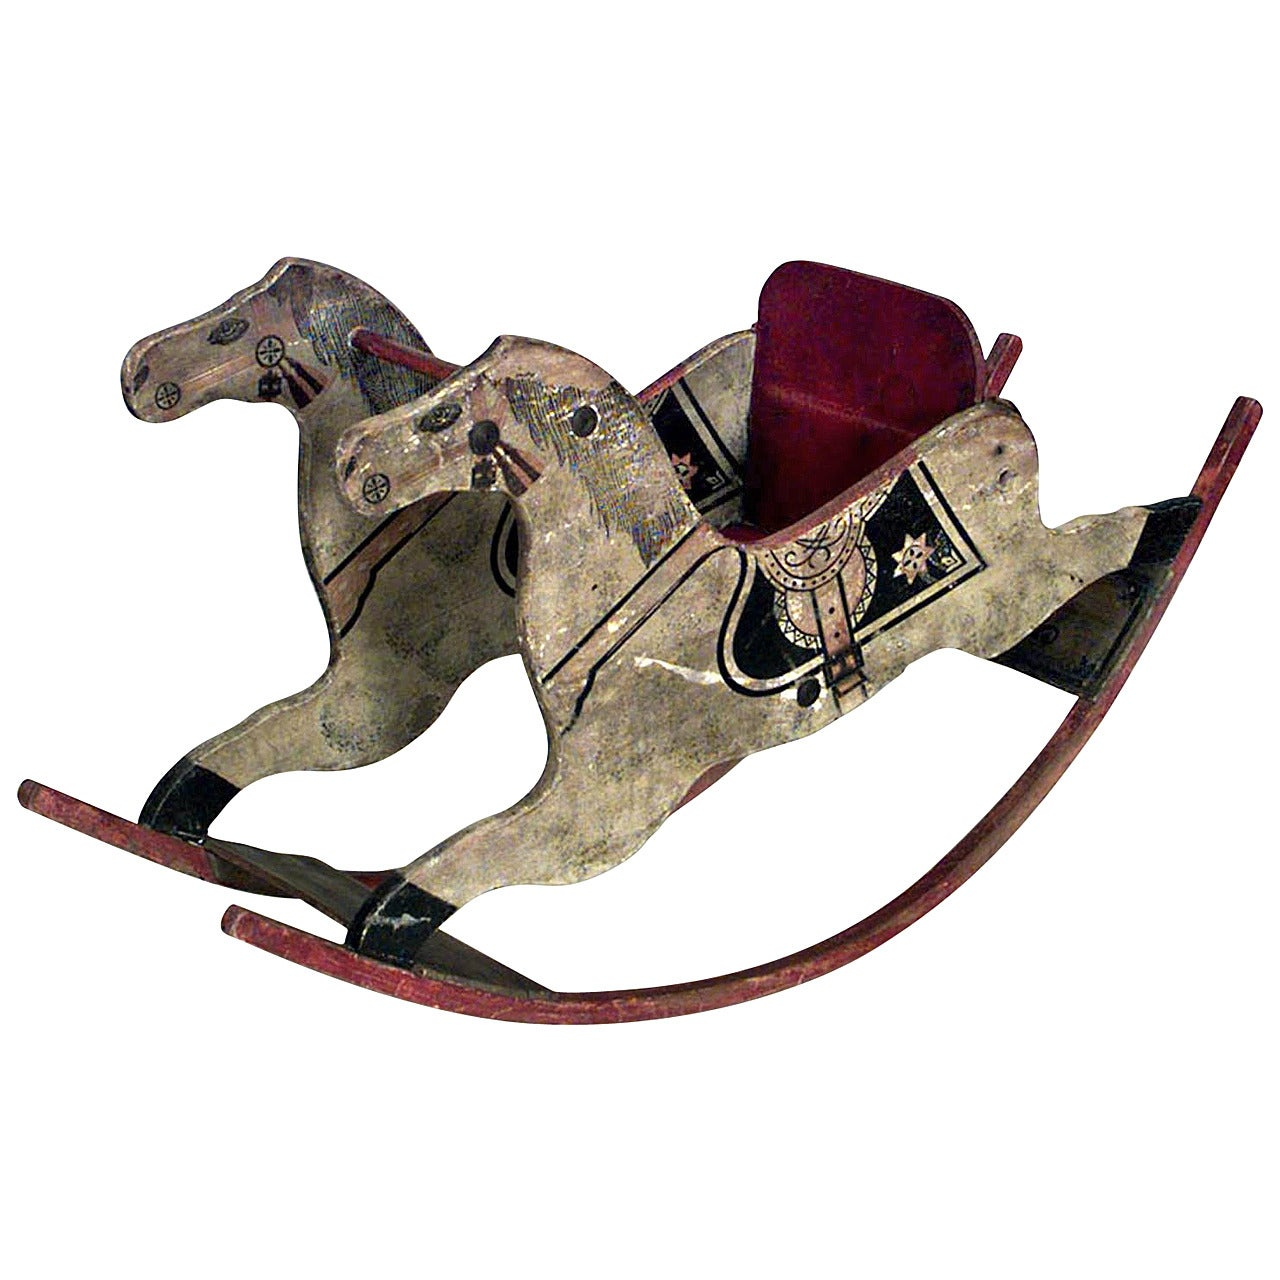 American Country Painted and Carved Wooden Rocking Horse